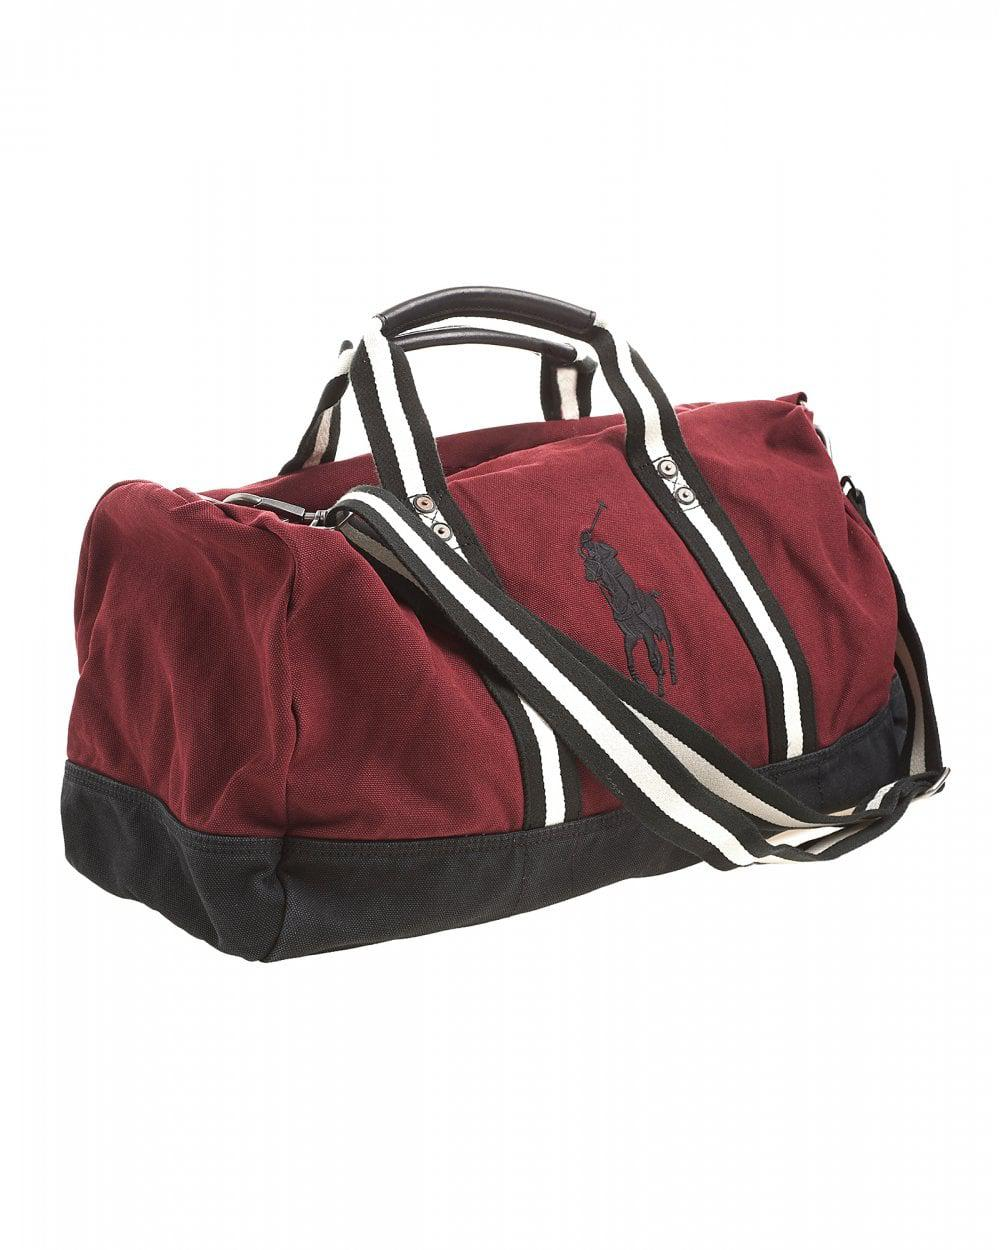 fcd8ee542f22 Lyst - Ralph Lauren Polo Player Striped Wine Red Gym Bag in Red for Men